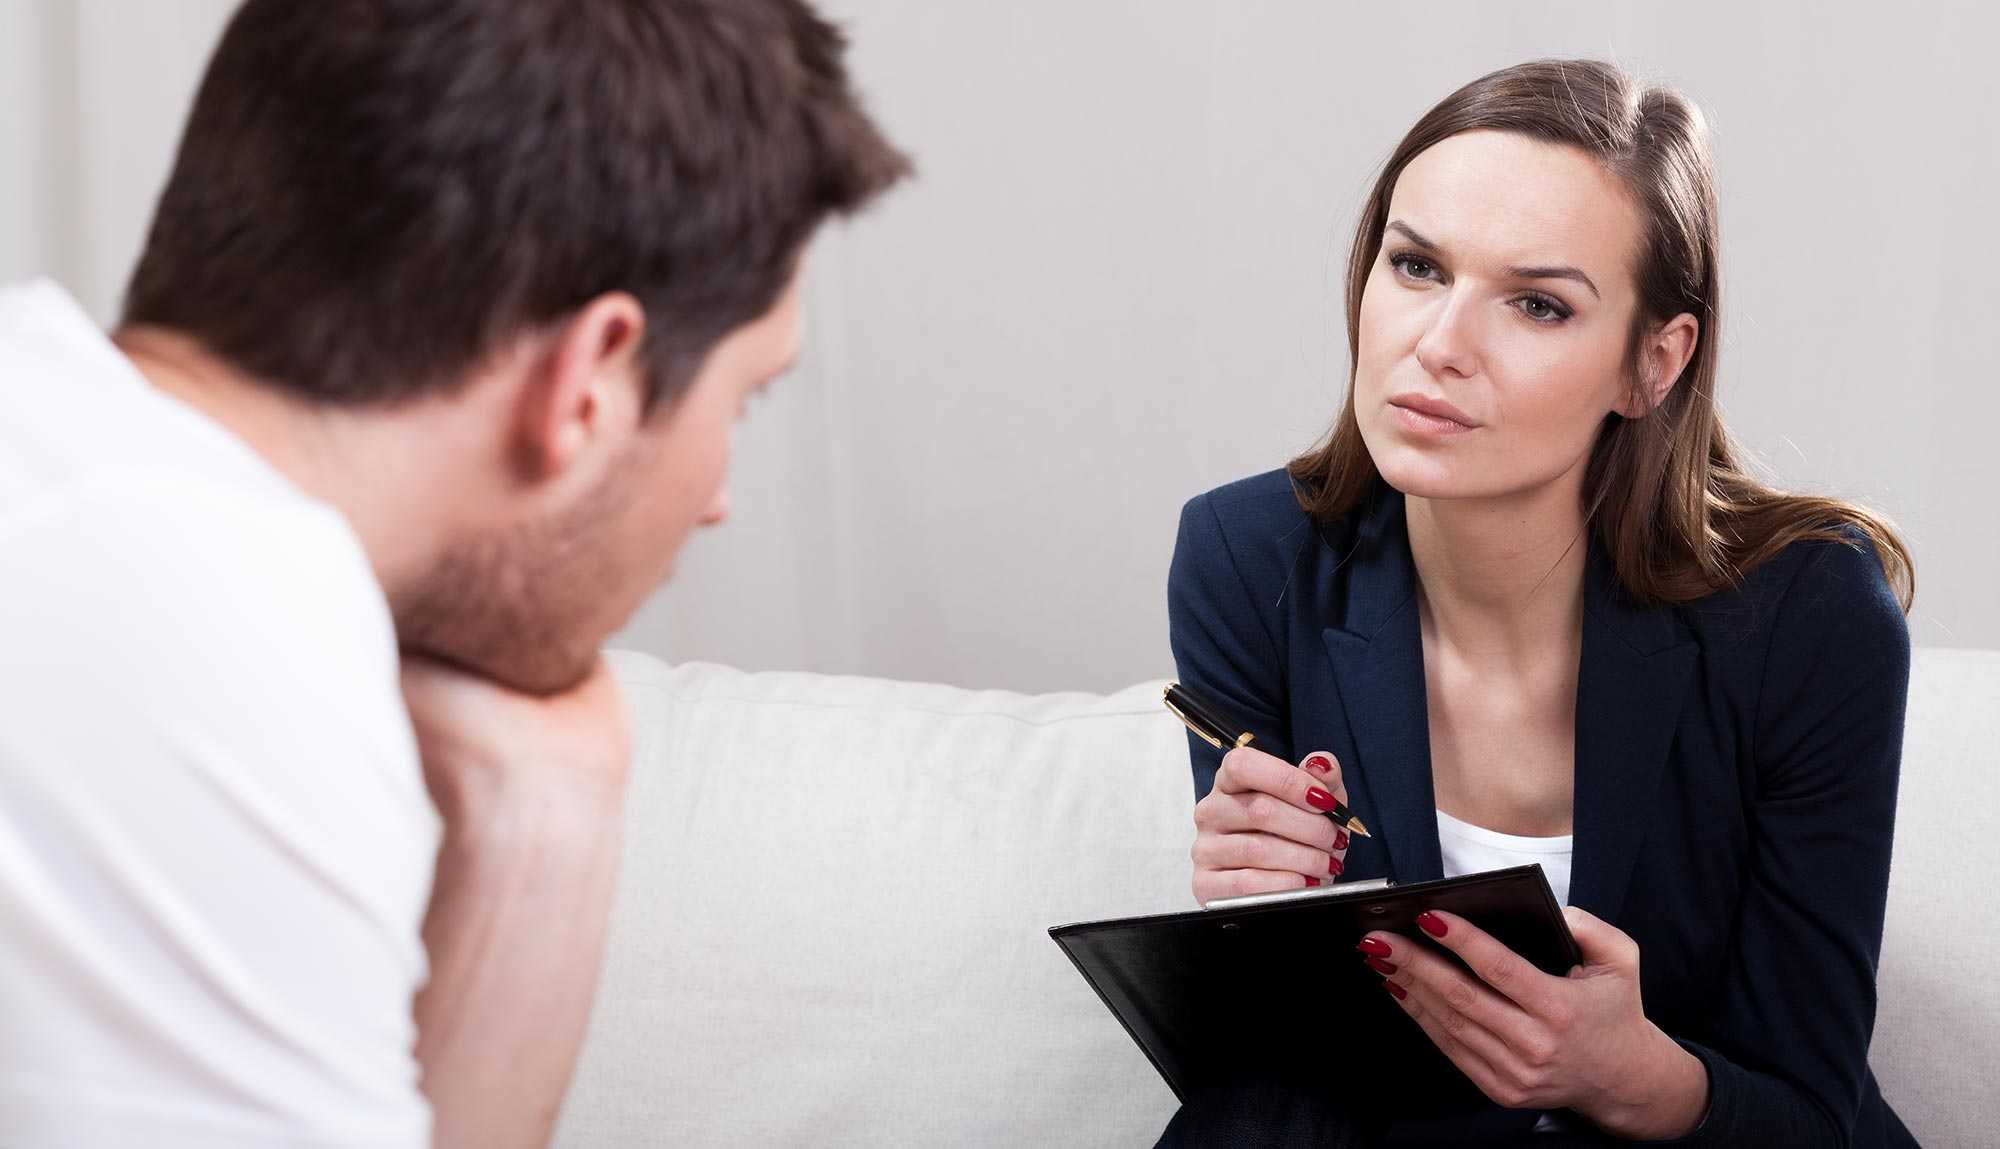 A clinical psychologist talks with a patient.